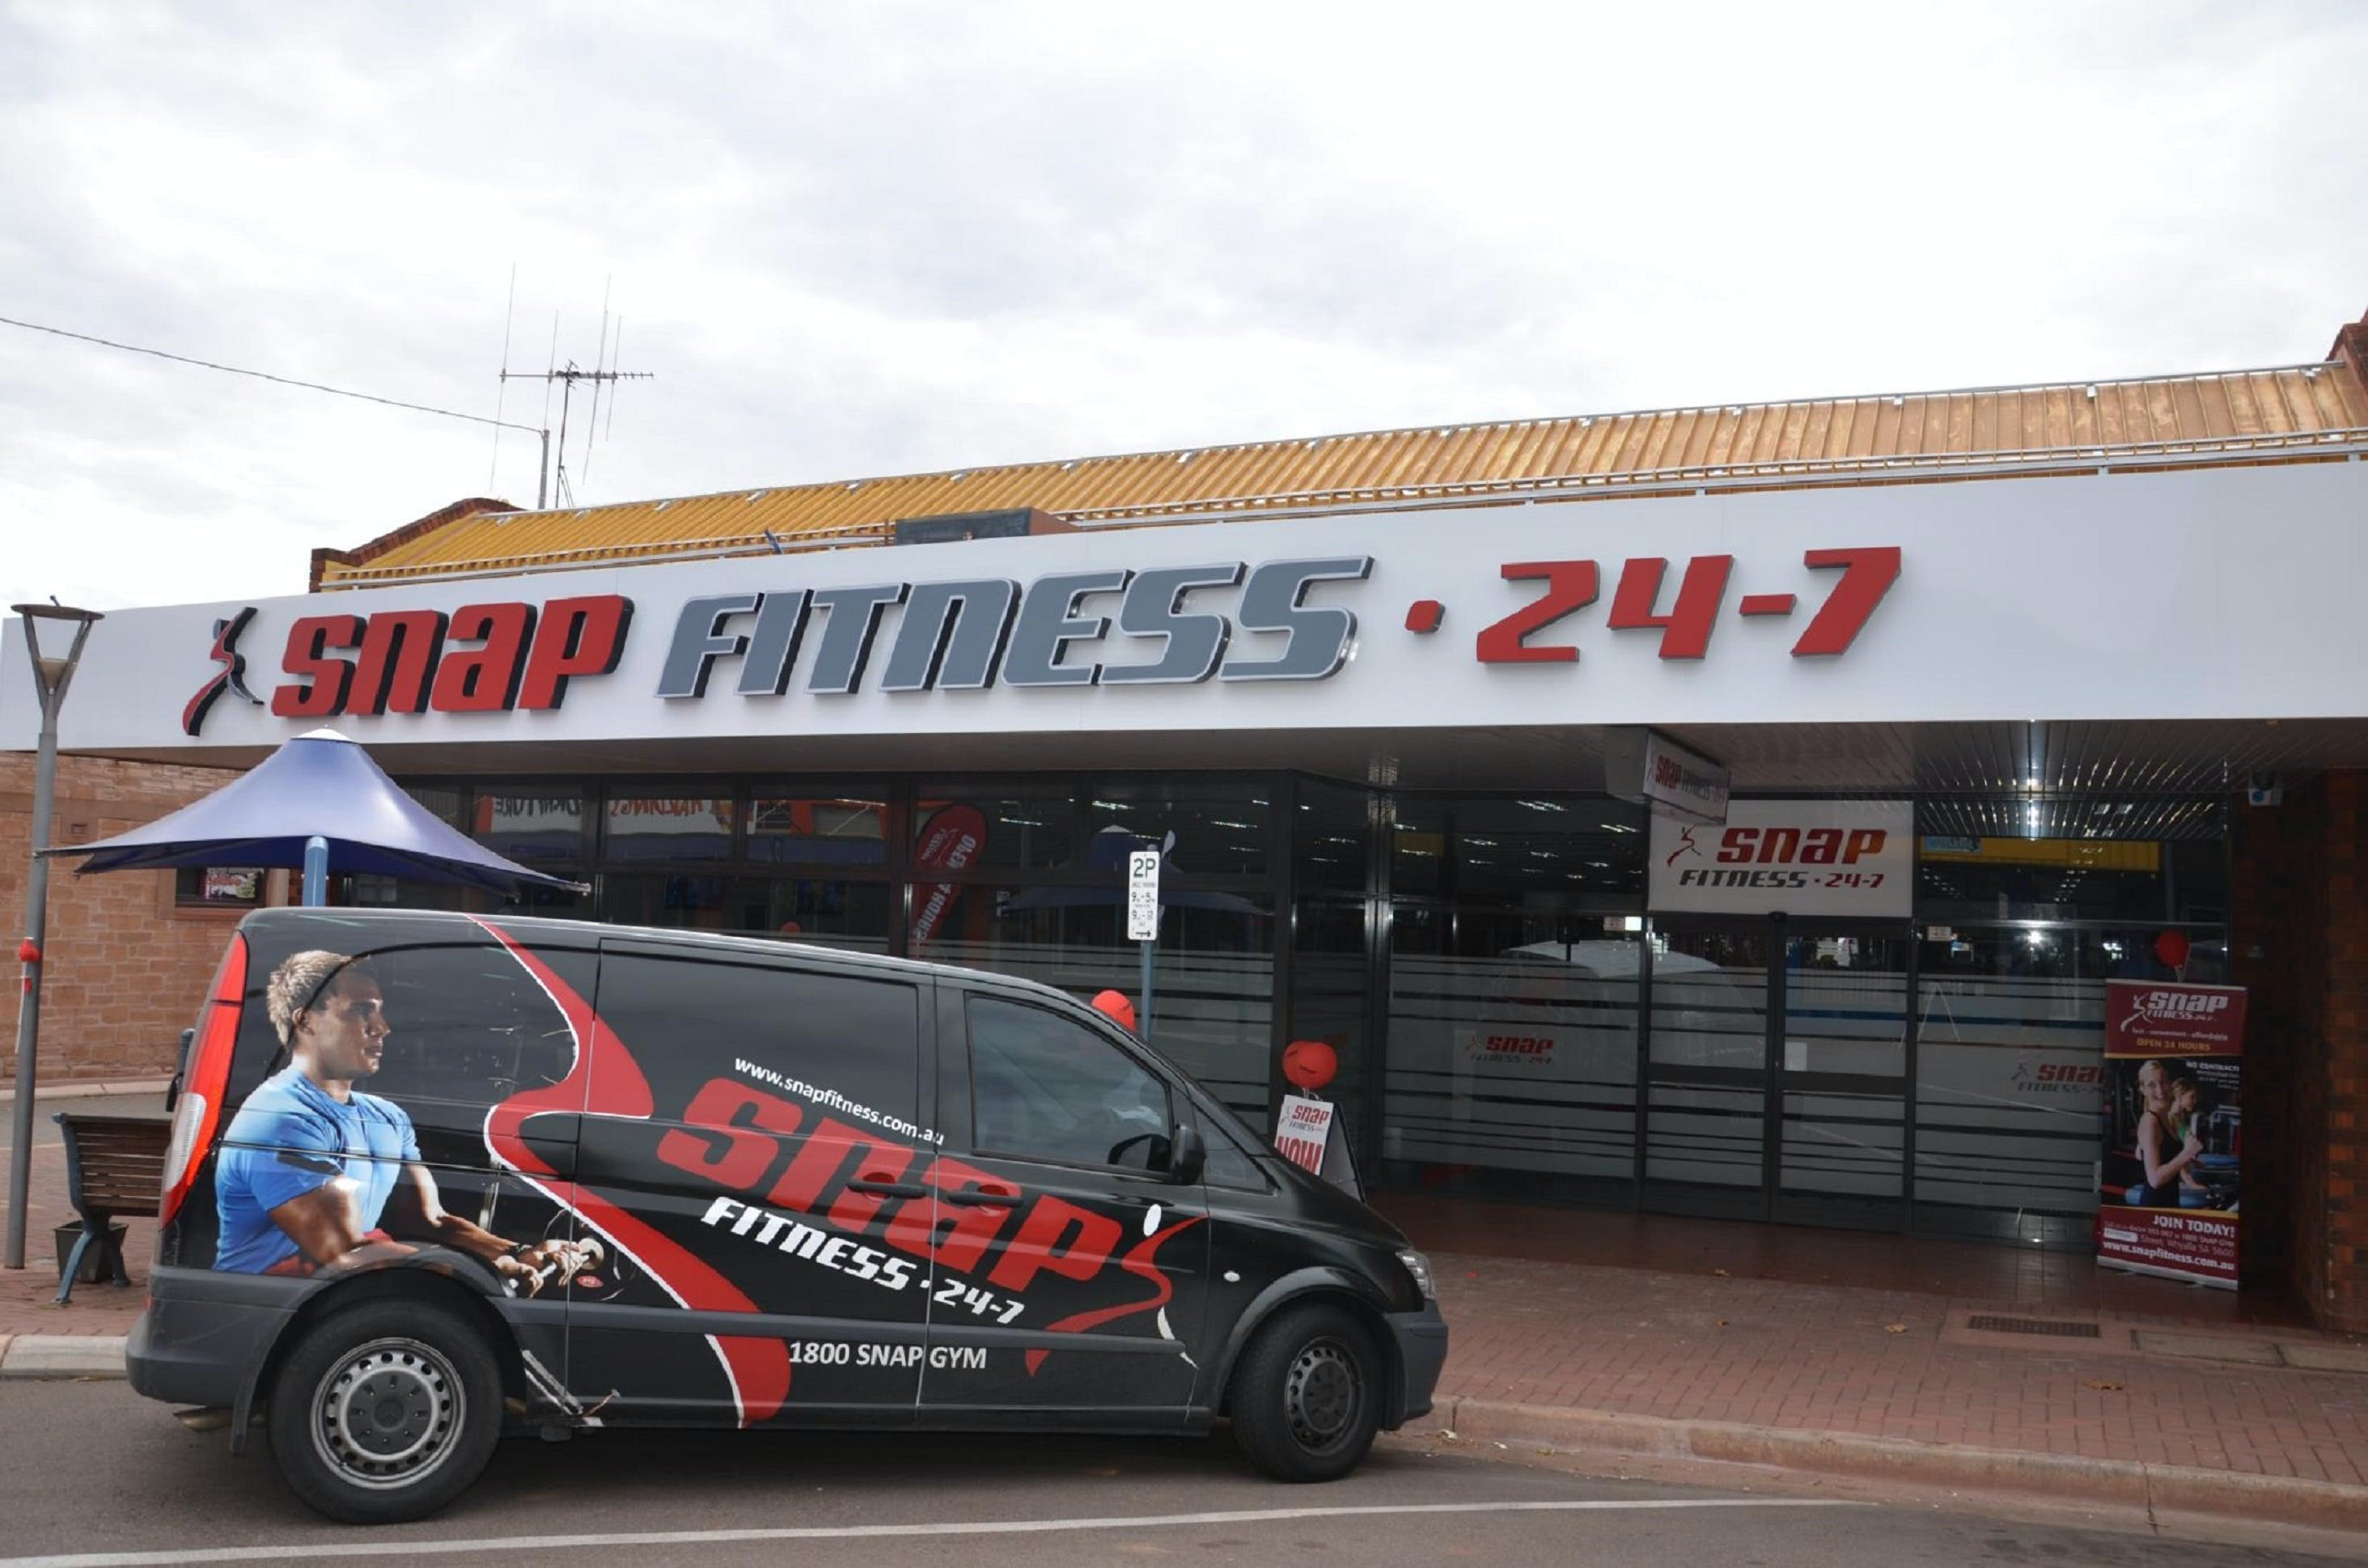 Snap Fitness Whyalla 24/7 gym - Accommodation Port Macquarie